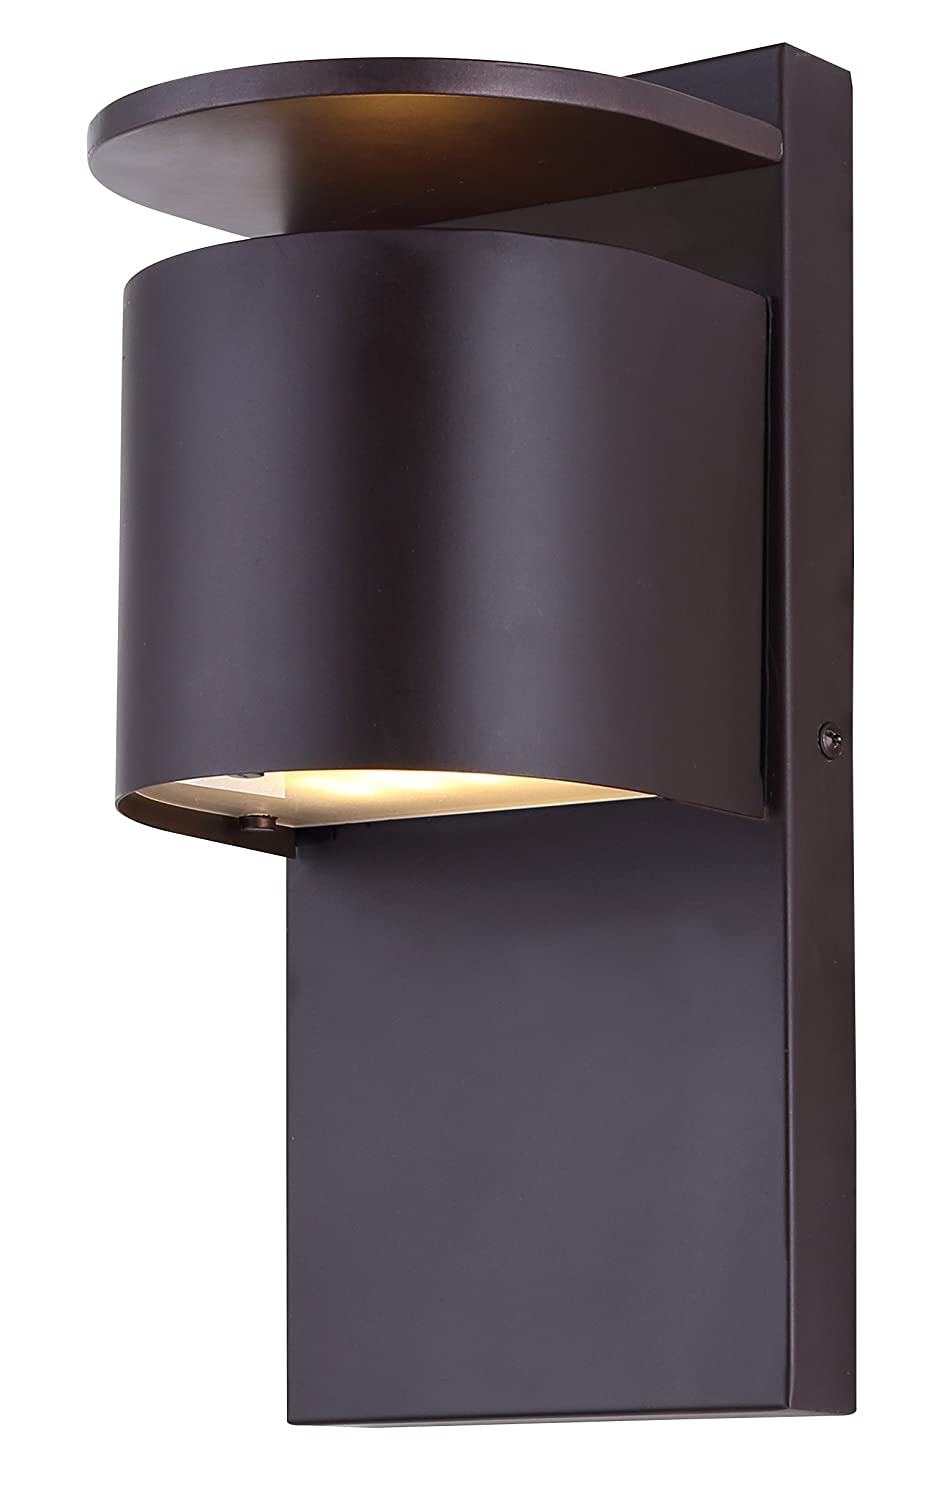 CANARM LOL284ORB LTD Notch Integrated LED Outdoor Light Oil Rubbed Bronze with Frosted Glass